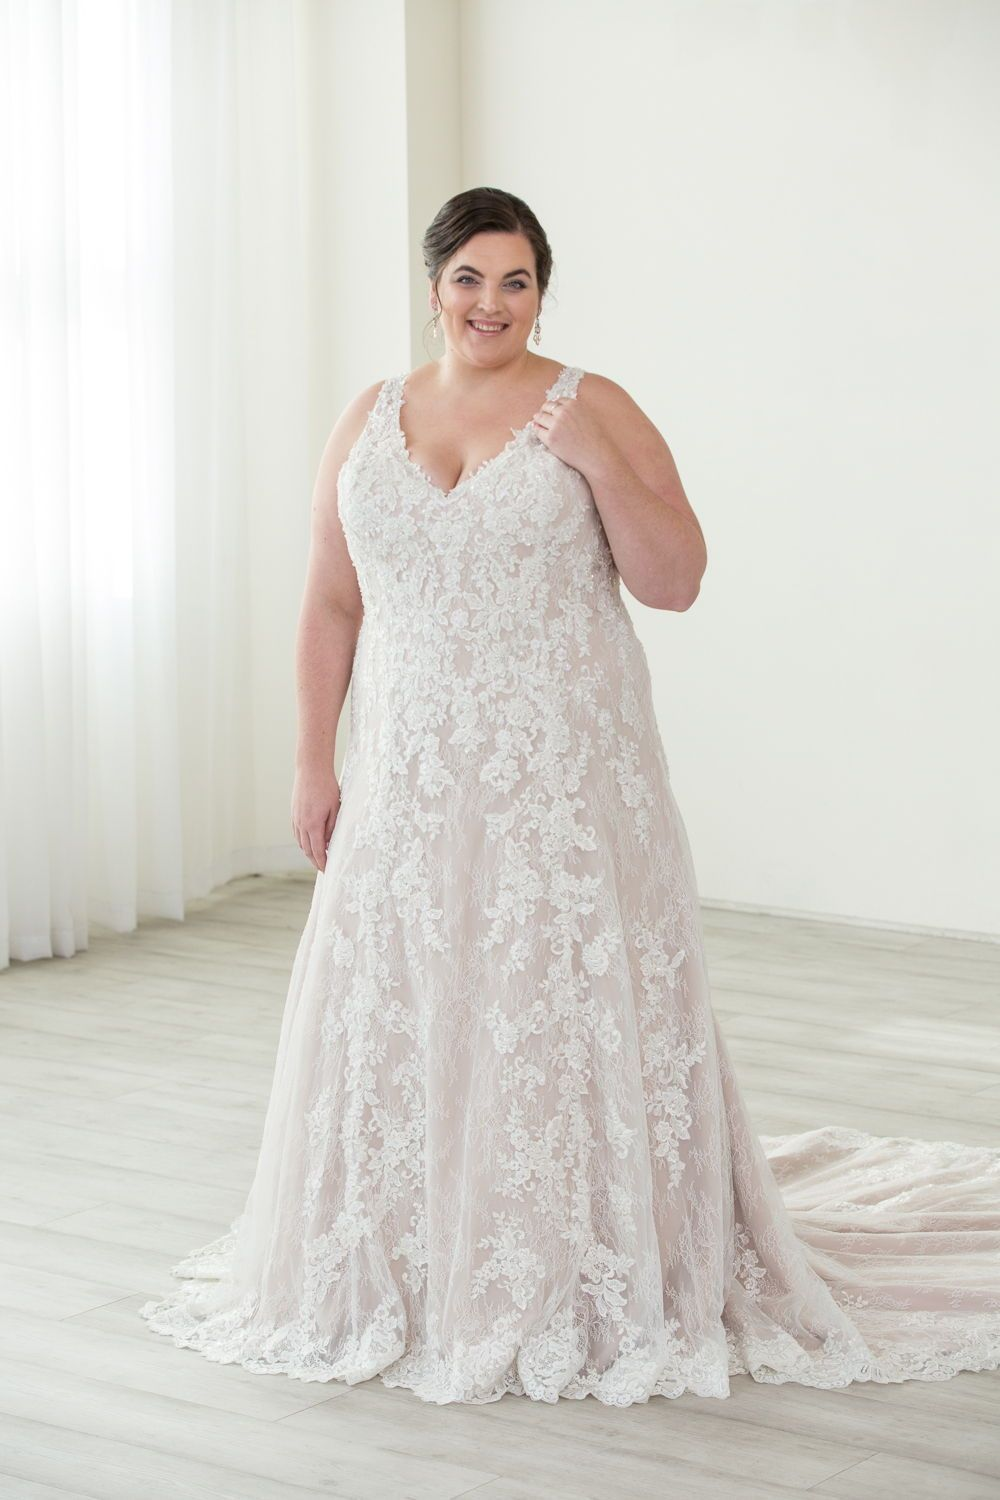 Affordable Custom Plus Size Wedding Gowns From The Usa Wedding Dresses Plus Size Short Wedding Dress Plus Size Wedding Gowns [ 1500 x 1000 Pixel ]